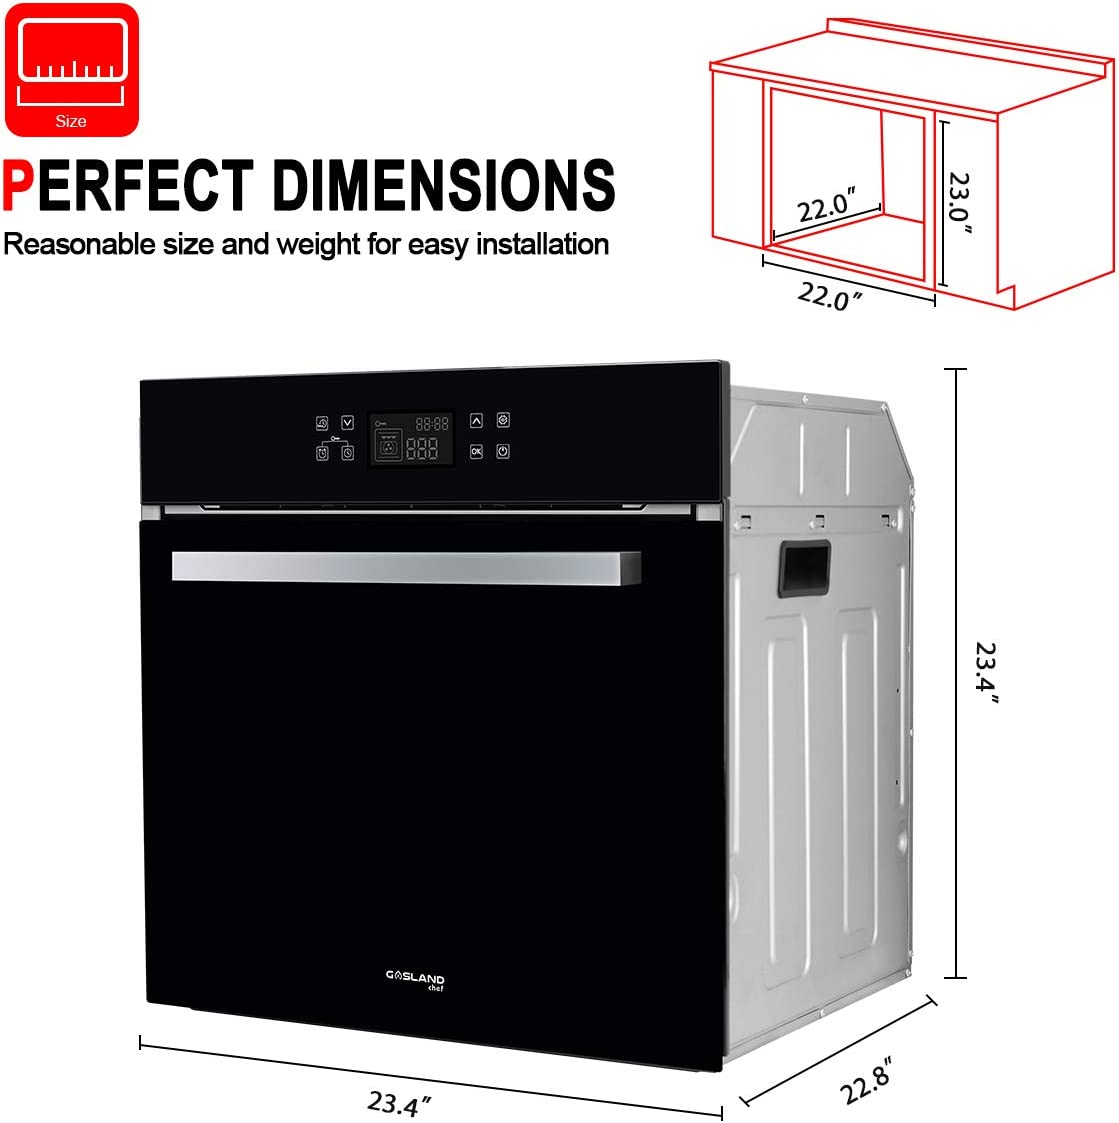 240V 3200W 2.3Cu.f 11 Cooking Functions Convection Wall Oven with Rotisserie Single Wall Oven Digital Display Touch Control GASLAND Chef ES611TB 24 Built-in Electric Ovens Tempered Glass Finish